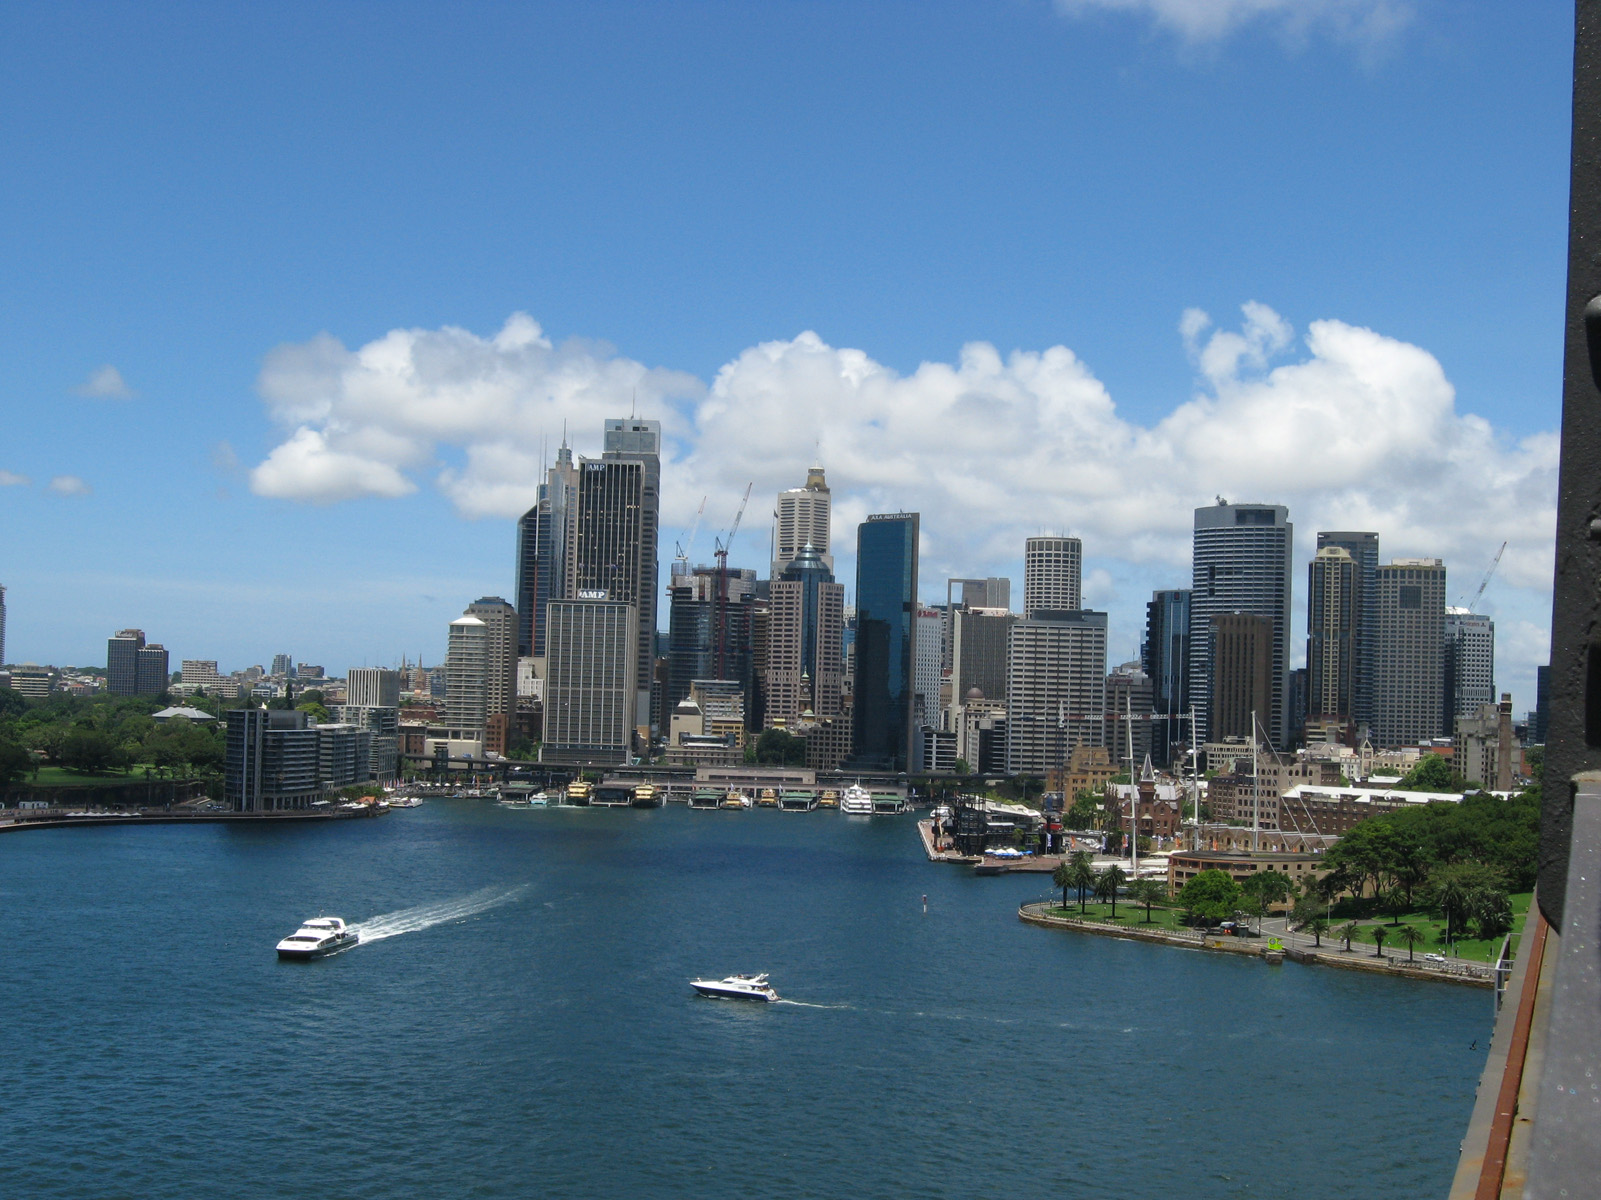 Sydney Cove and the business district in the background..